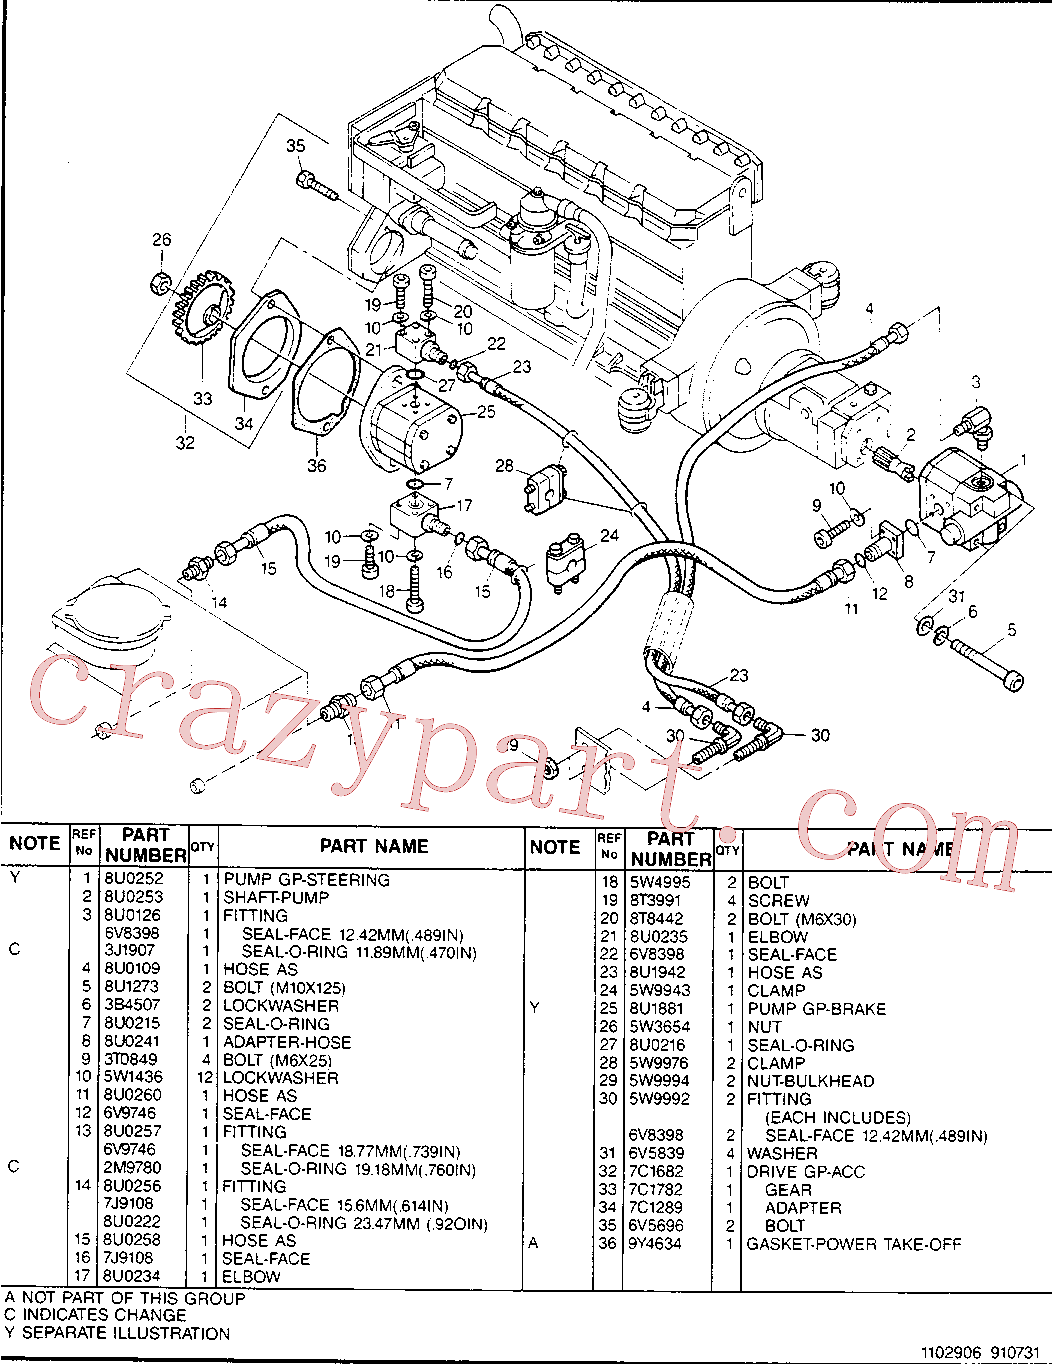 CAT 8U-3668 for 224B Excavator(EXC) hydraulic system 8U-0254 Assembly